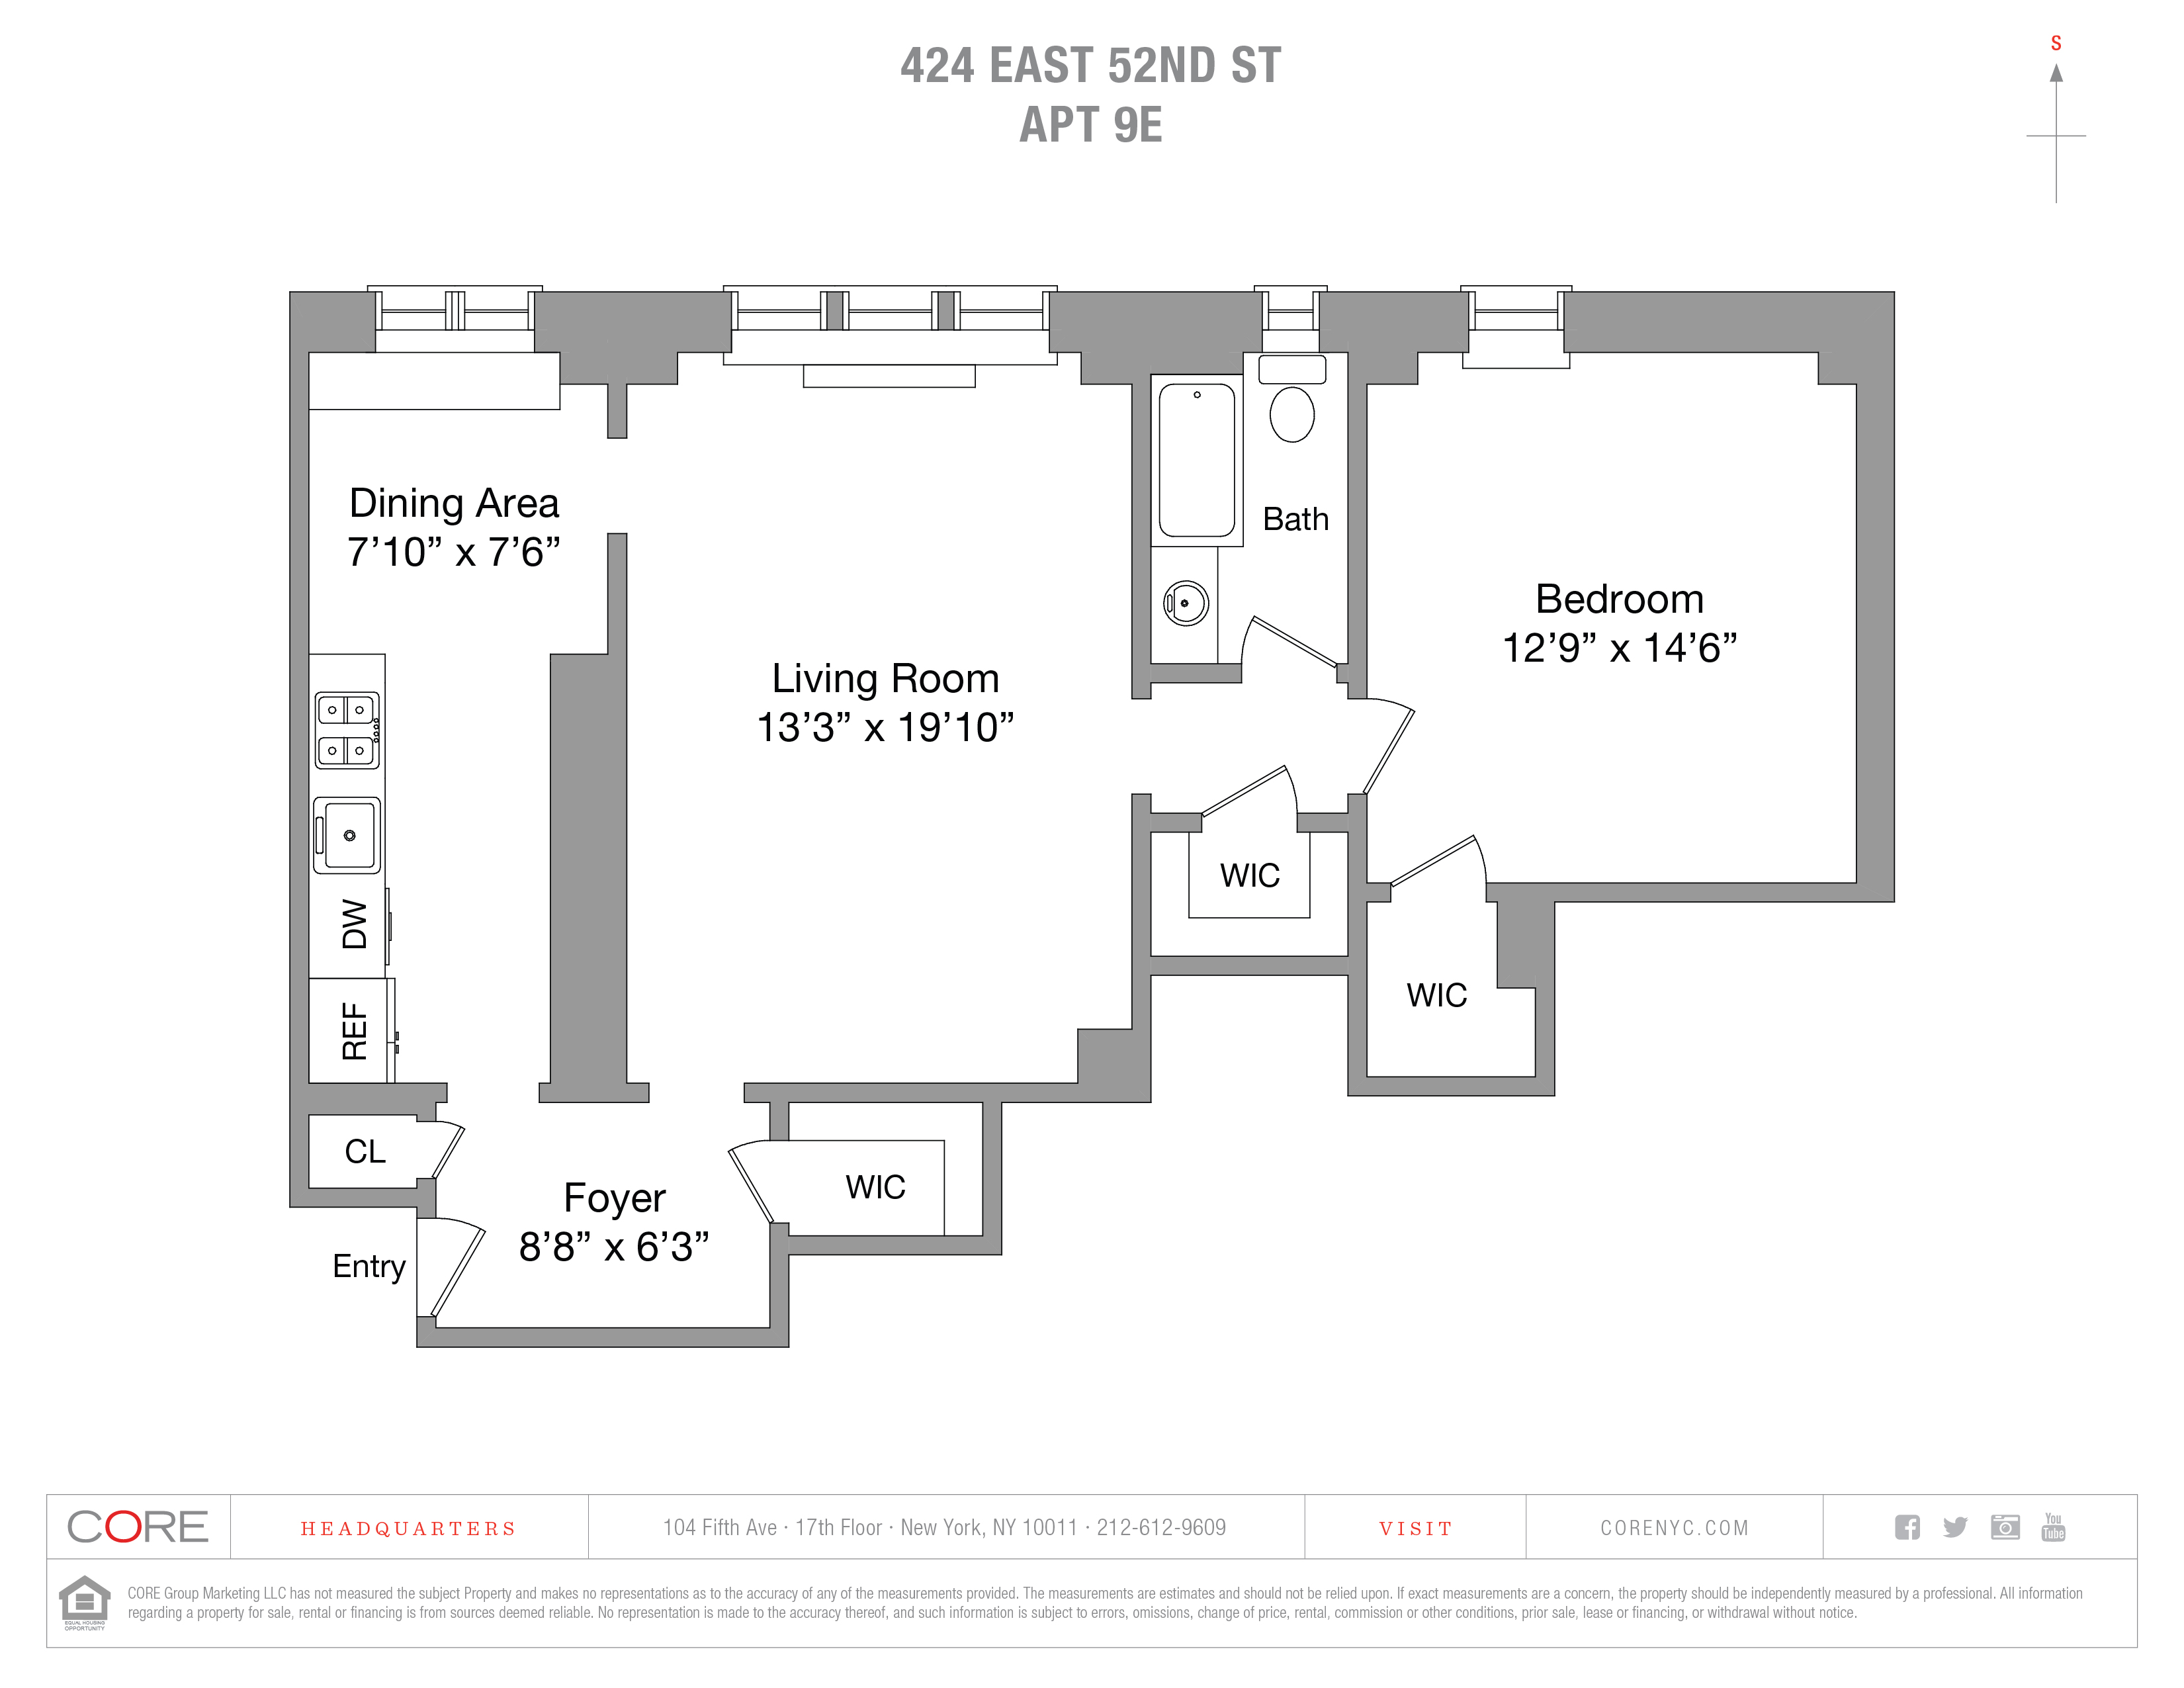 424 East 52nd St. 9East, New York, NY 10022